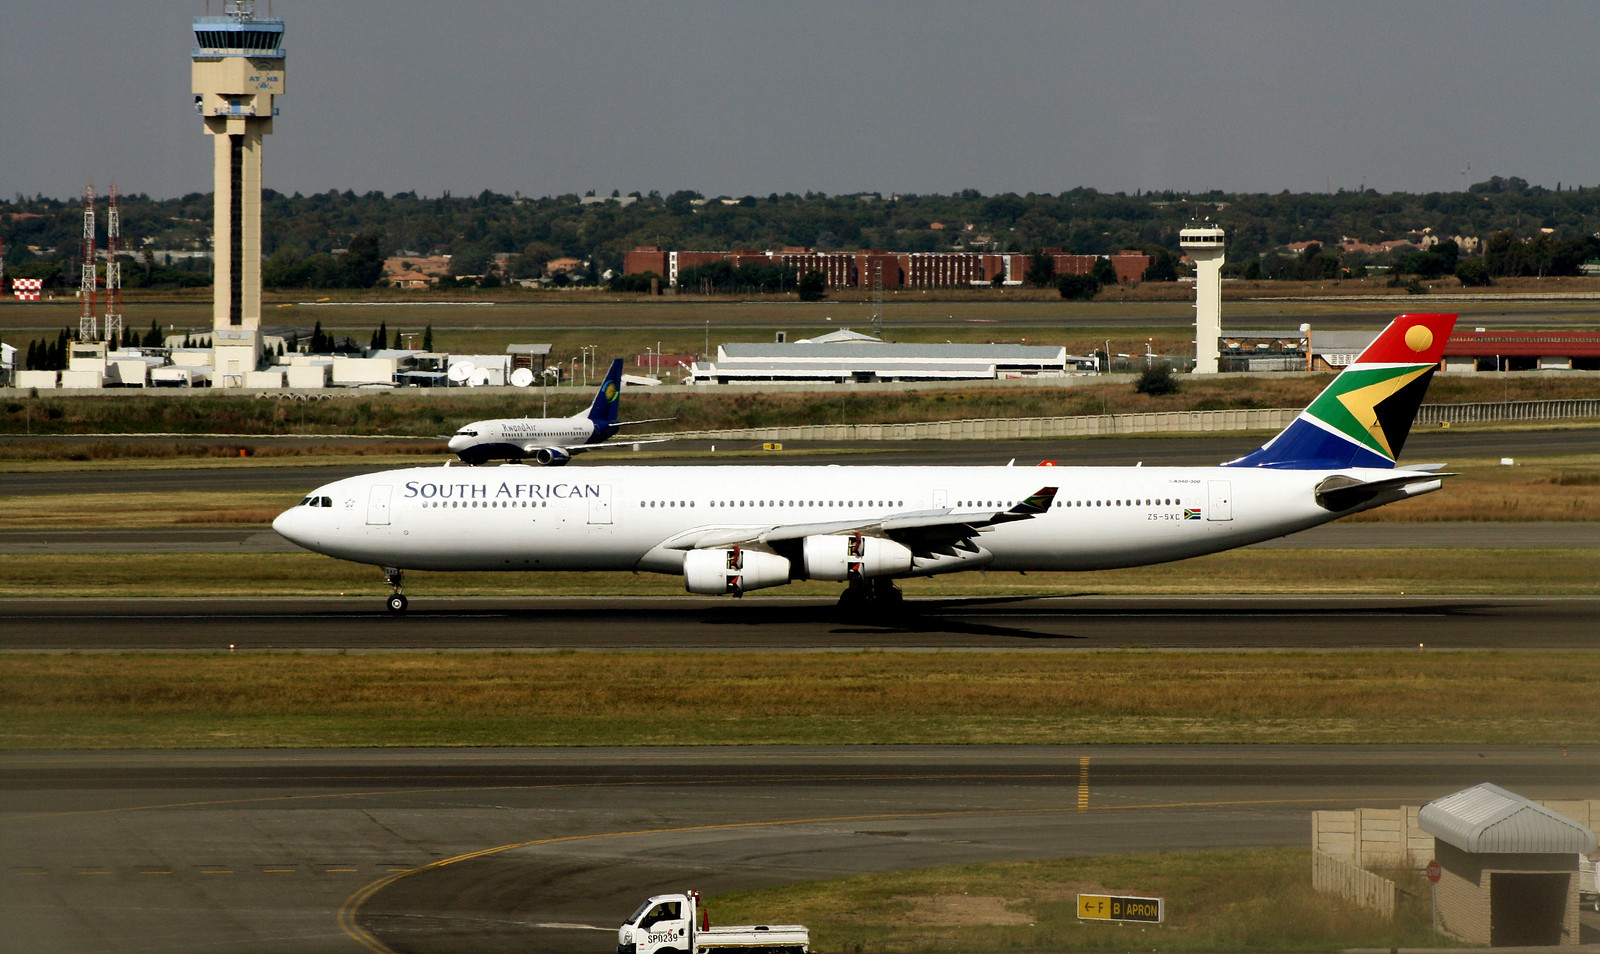 South African Airways A340-313 ZS-SXC